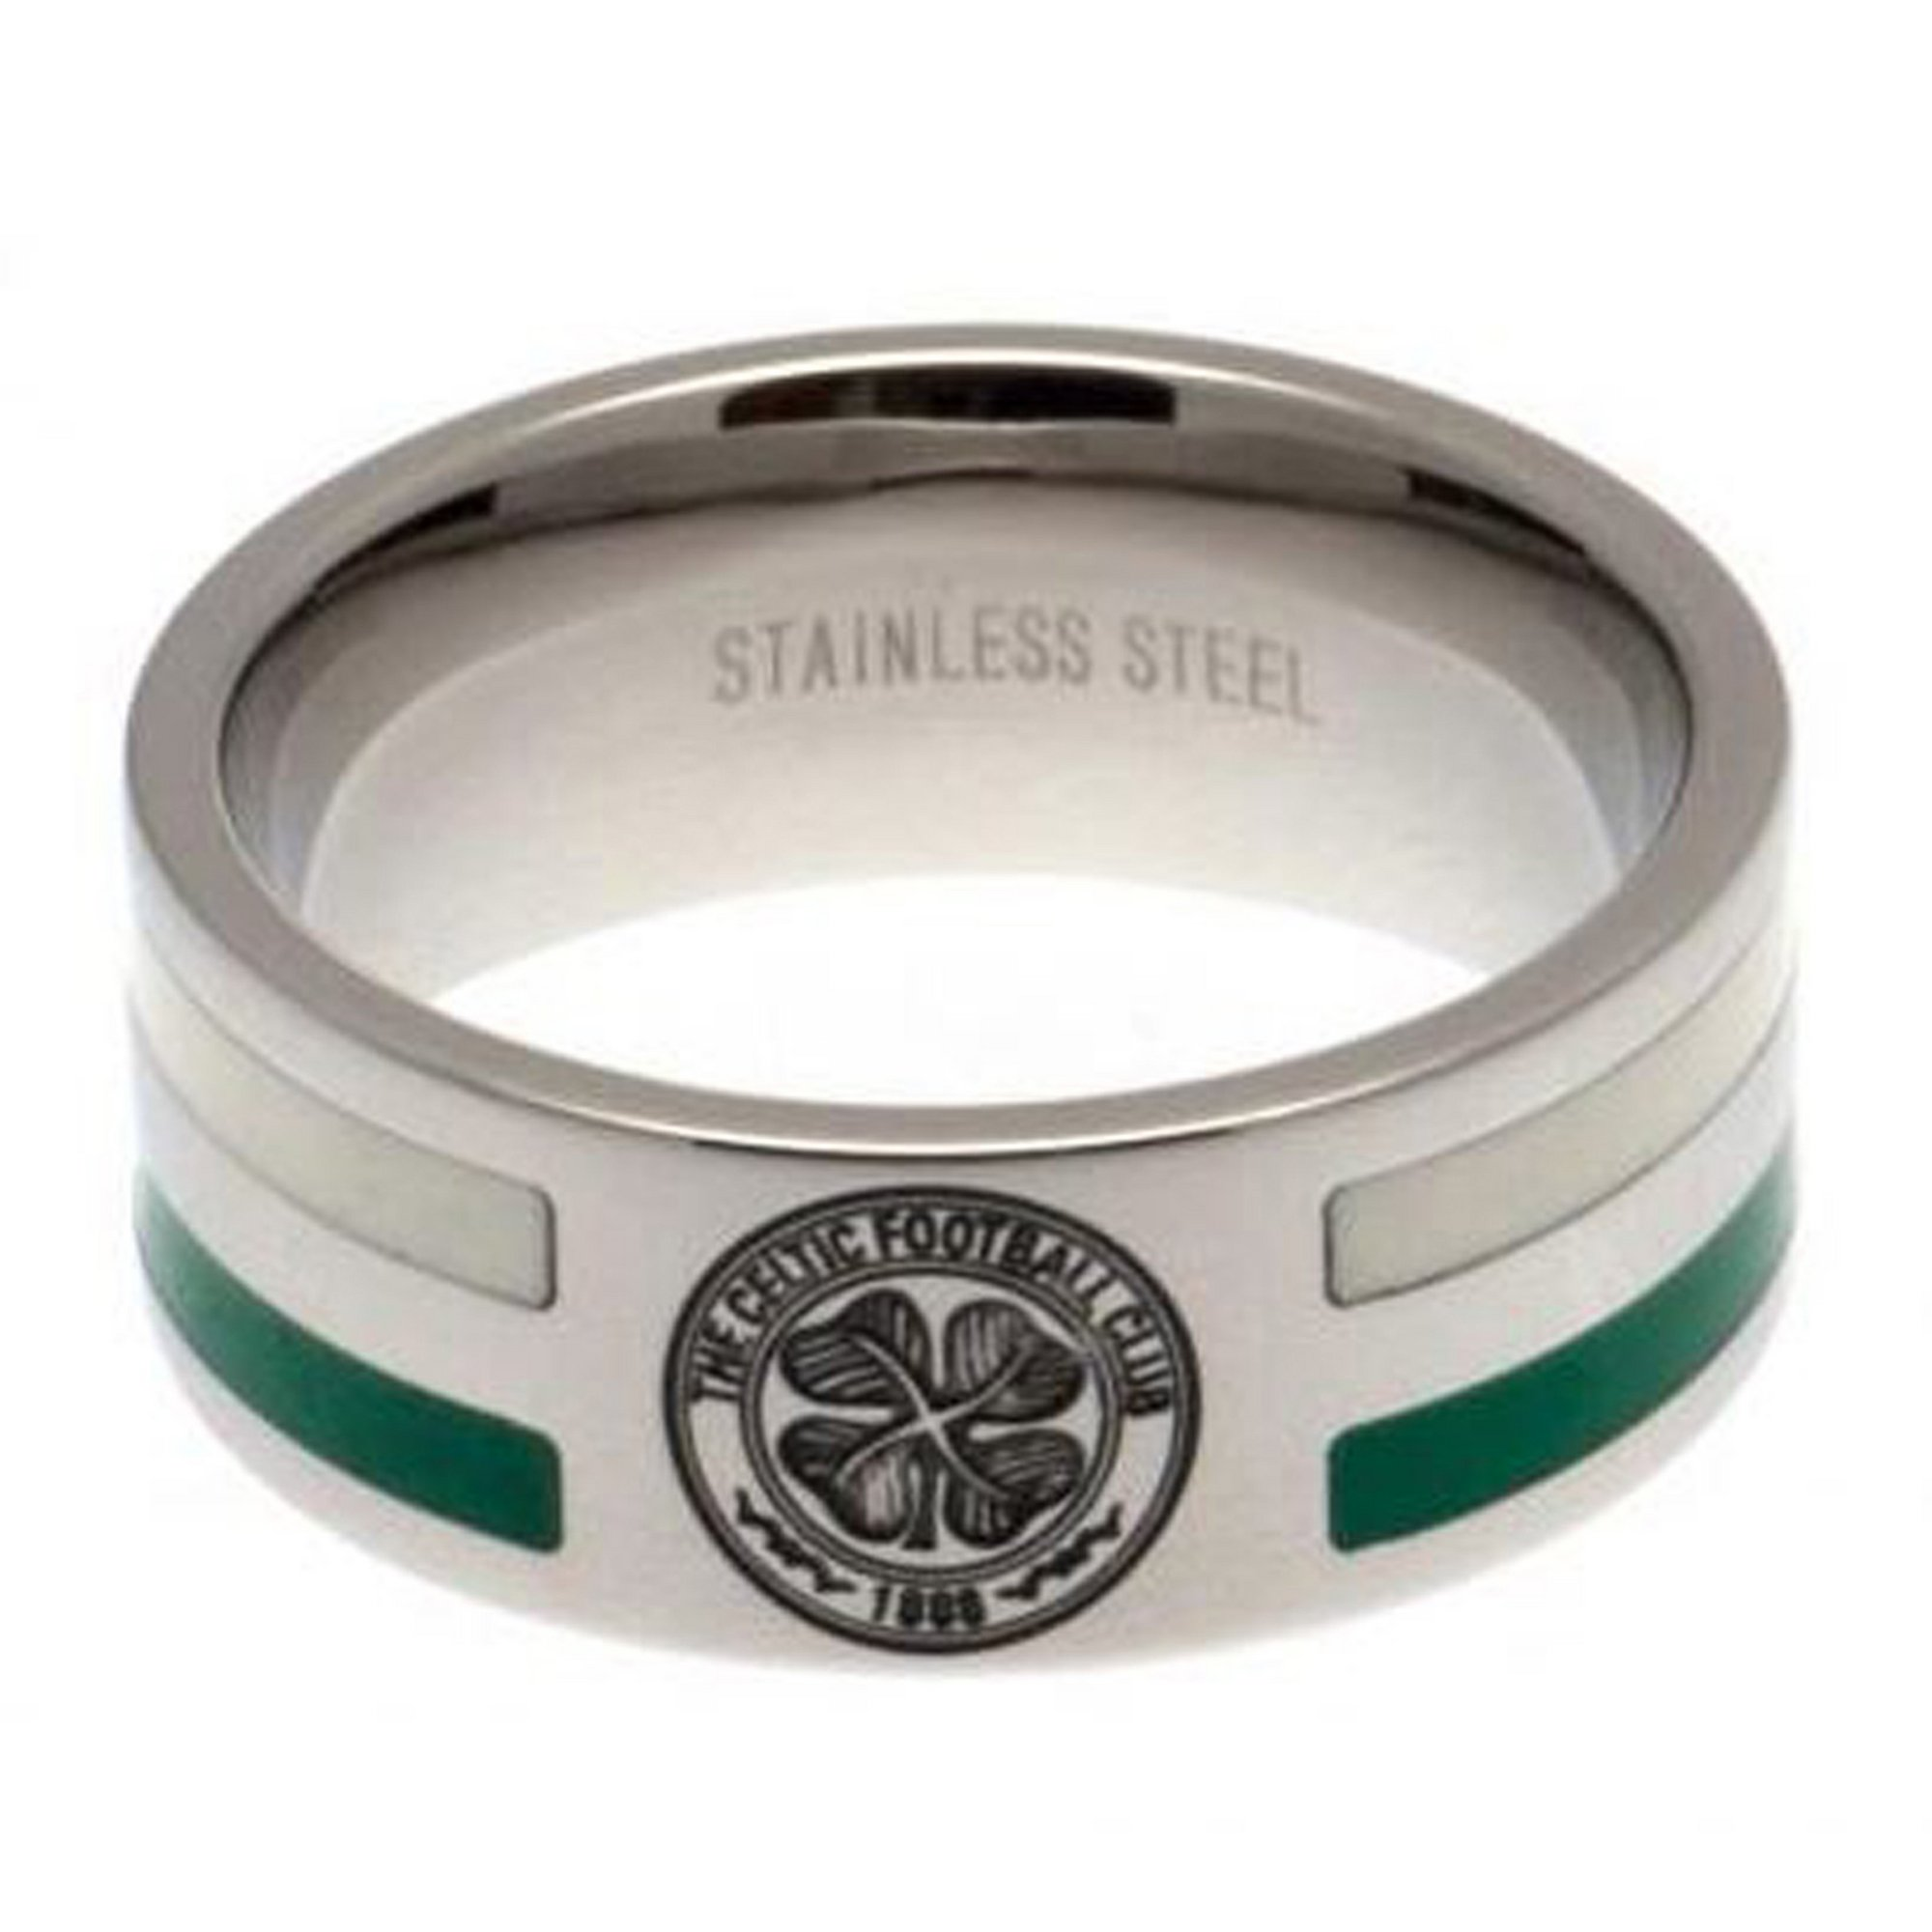 Image of Celtic FC Stainless Steel Colour Striped Crest Ring